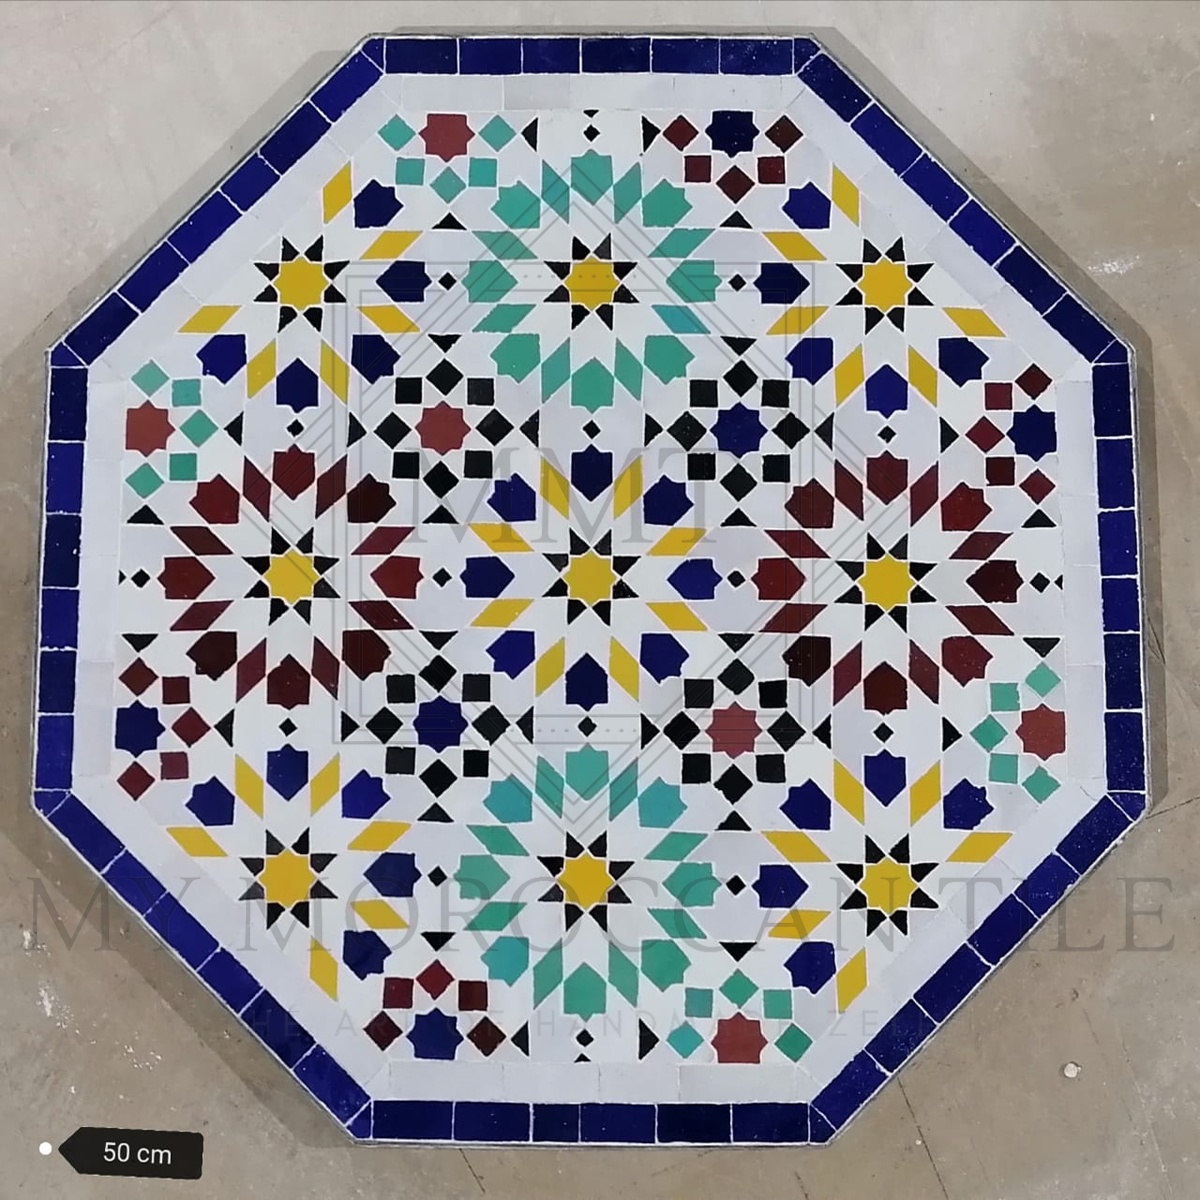 Handmade Moroccan Mosaic Table 2108-19